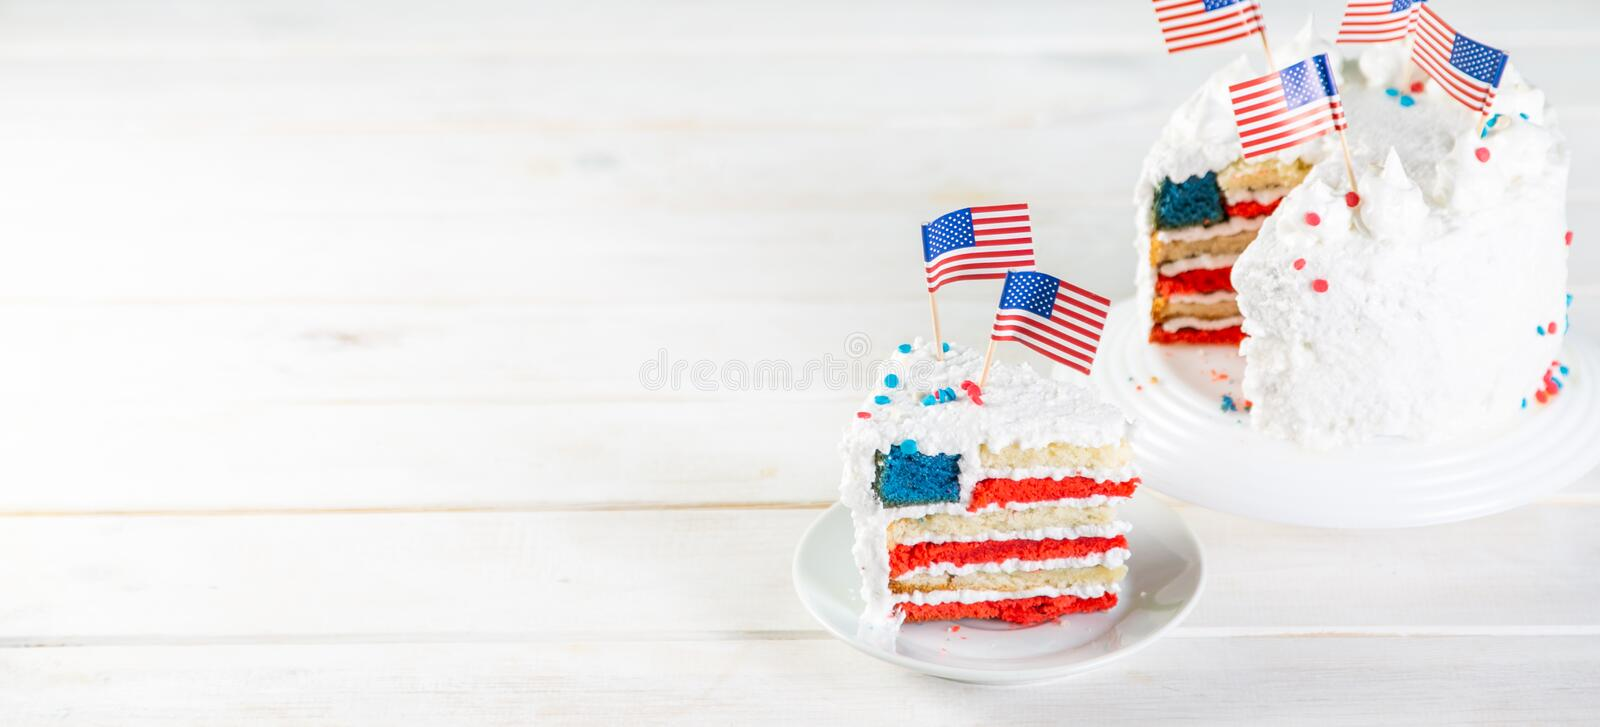 American national holidays concept - 4th of July, Memorial Day, Labour Day. Layered spounge cake in USA flag colours. Rustic background, copy space royalty free stock image